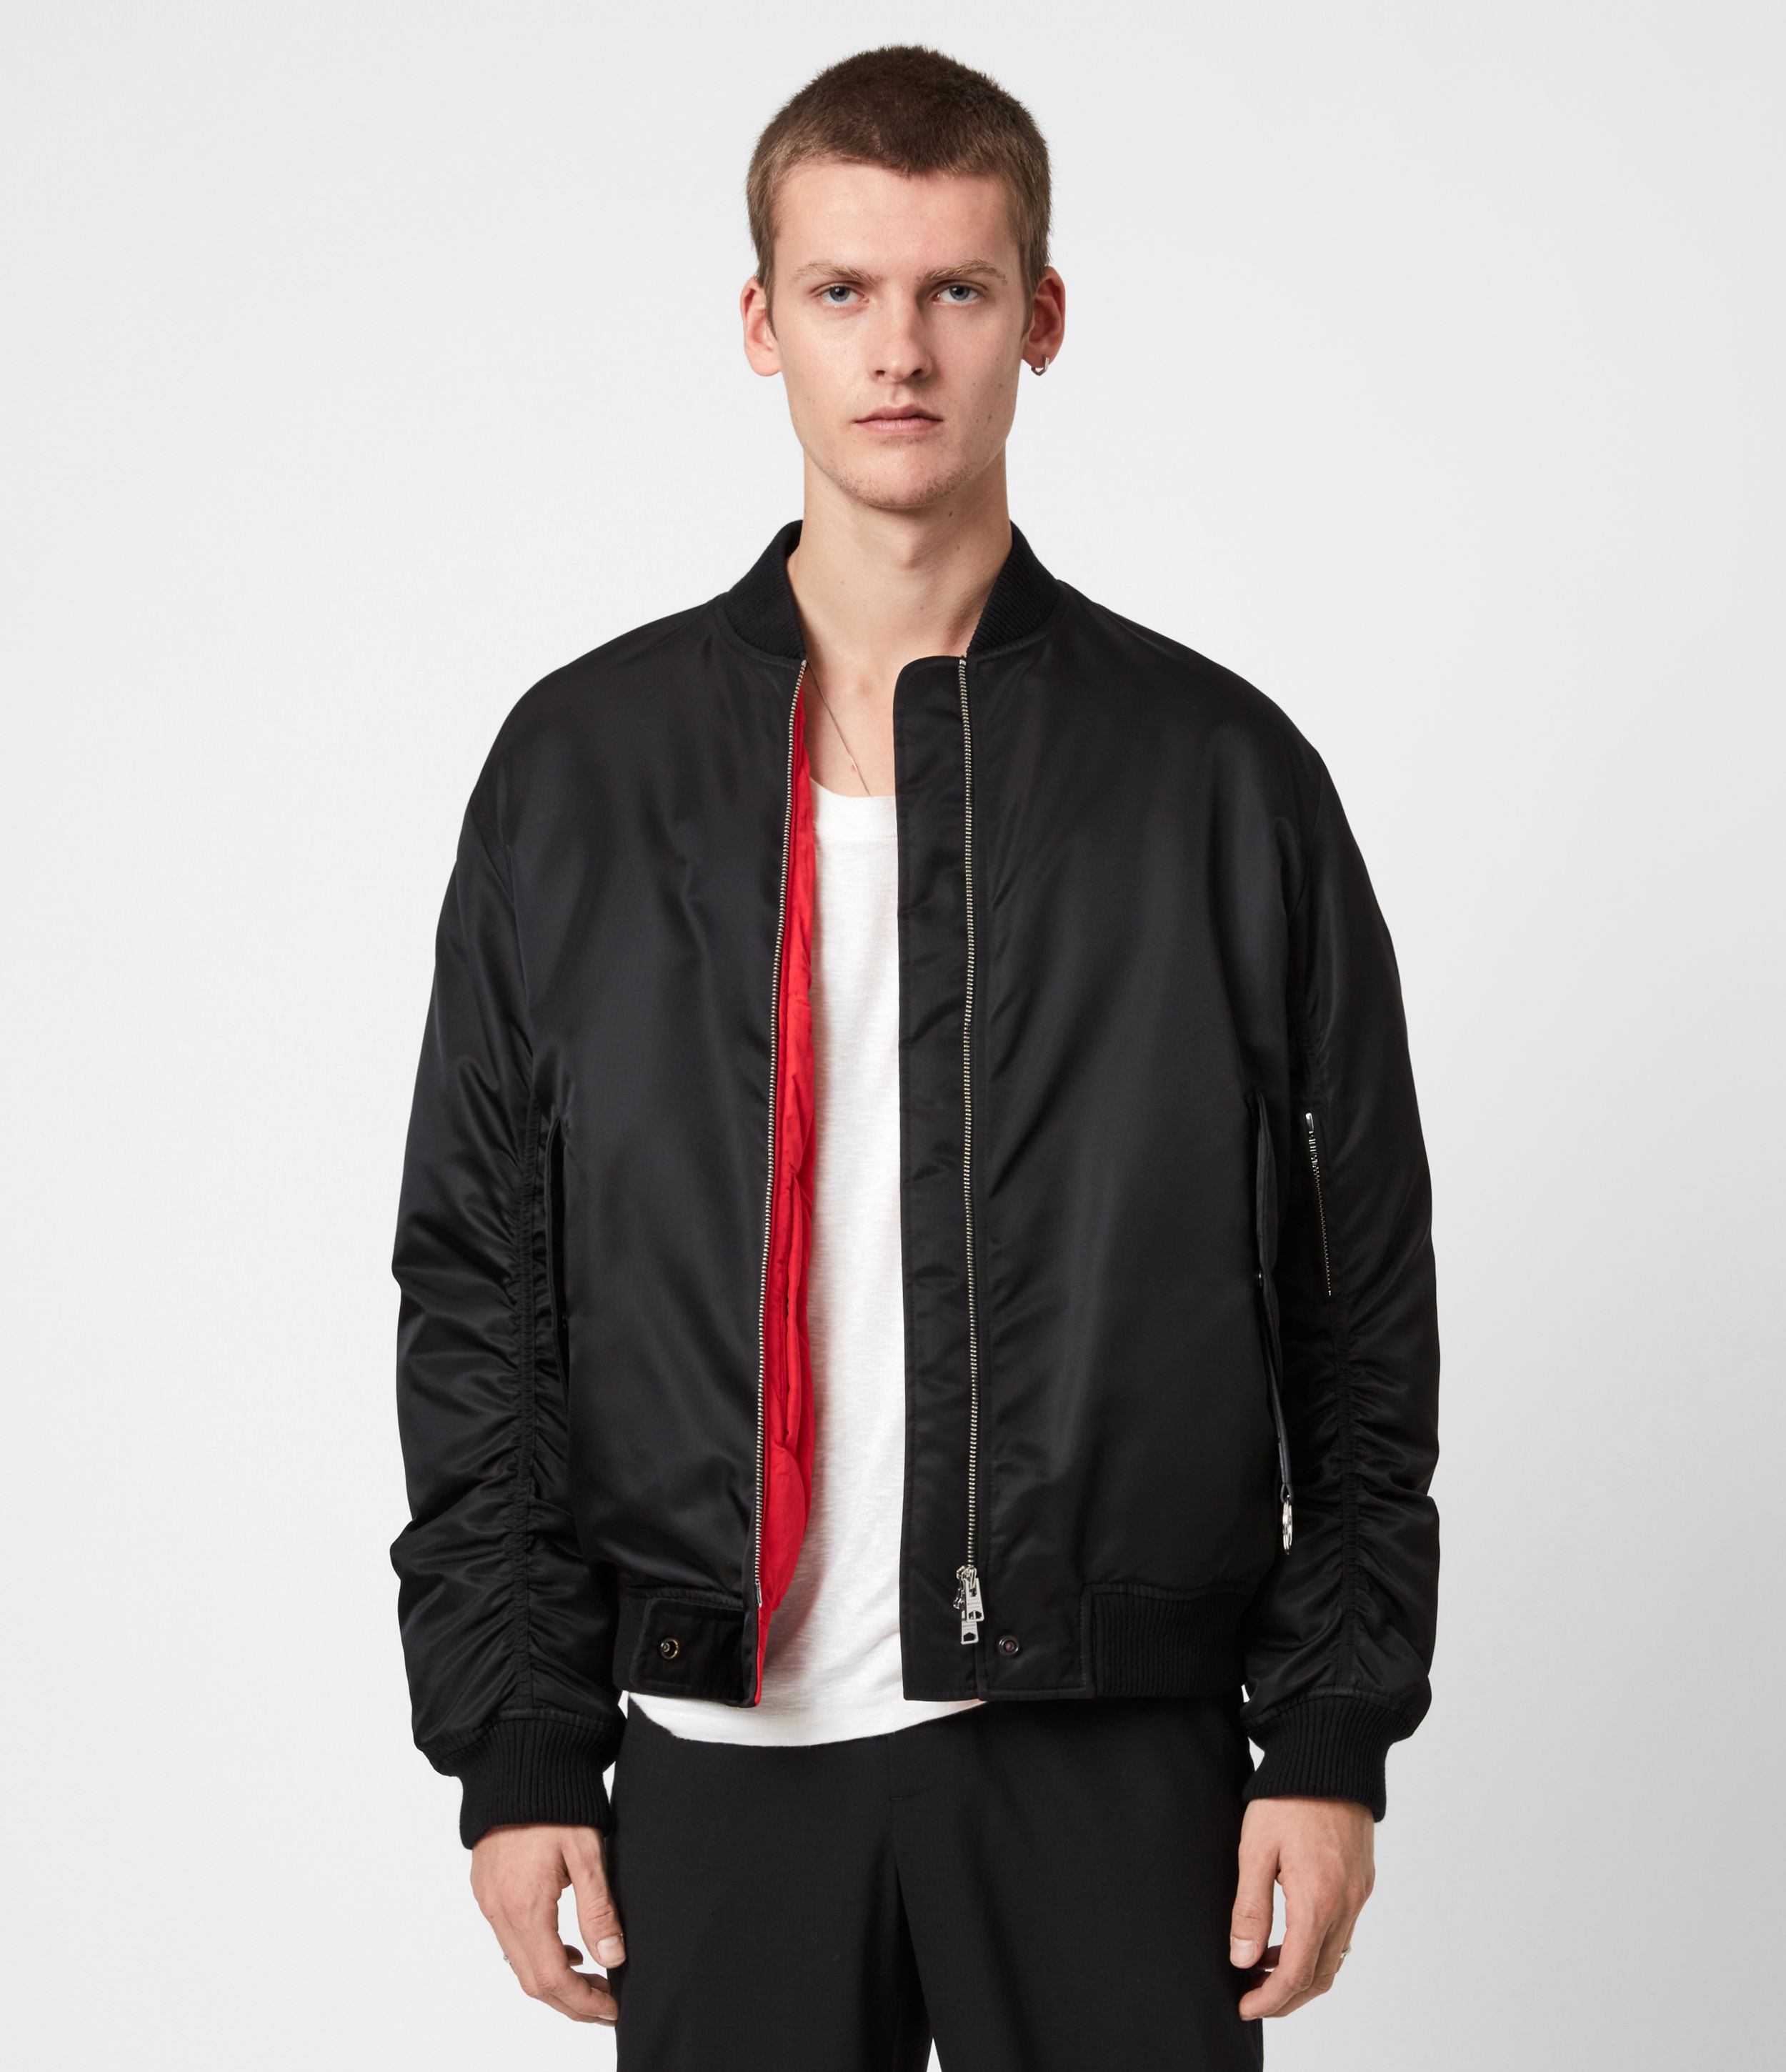 AllSaints Men's Cotton Regular Fit Axel Zip Closure Bomber Jacket, Black, Size: M